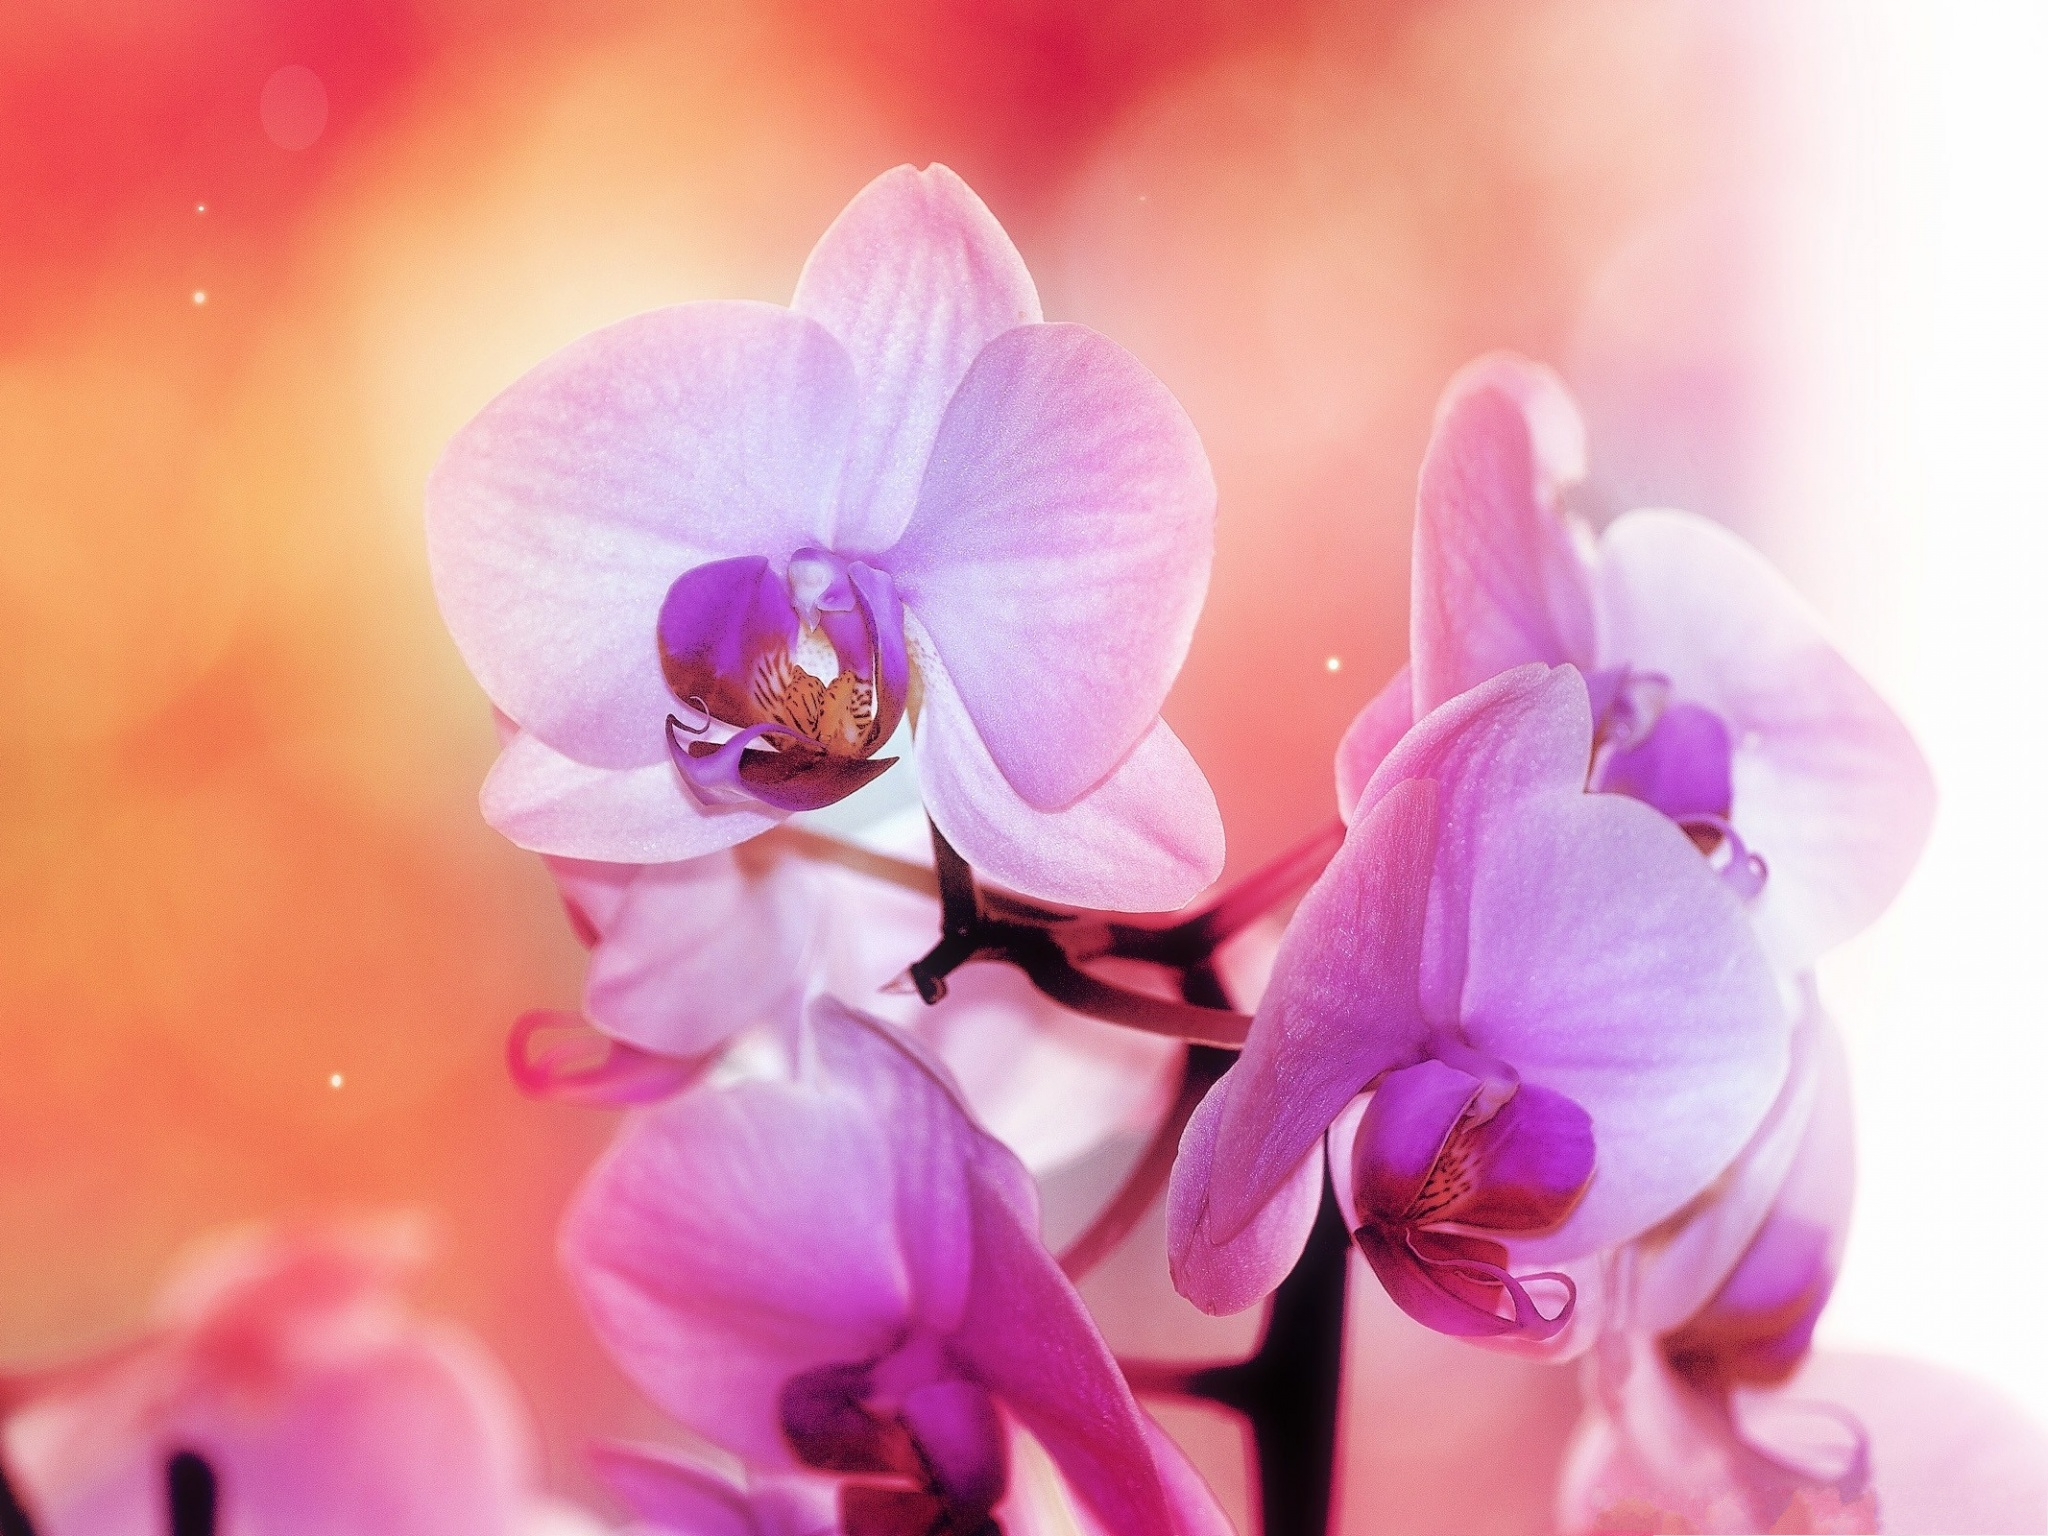 click to free download the wallpaper--Orchid Flowers Pic, Pink Tiny Flowers on Orange Background 2048X1536 free wallpaper download